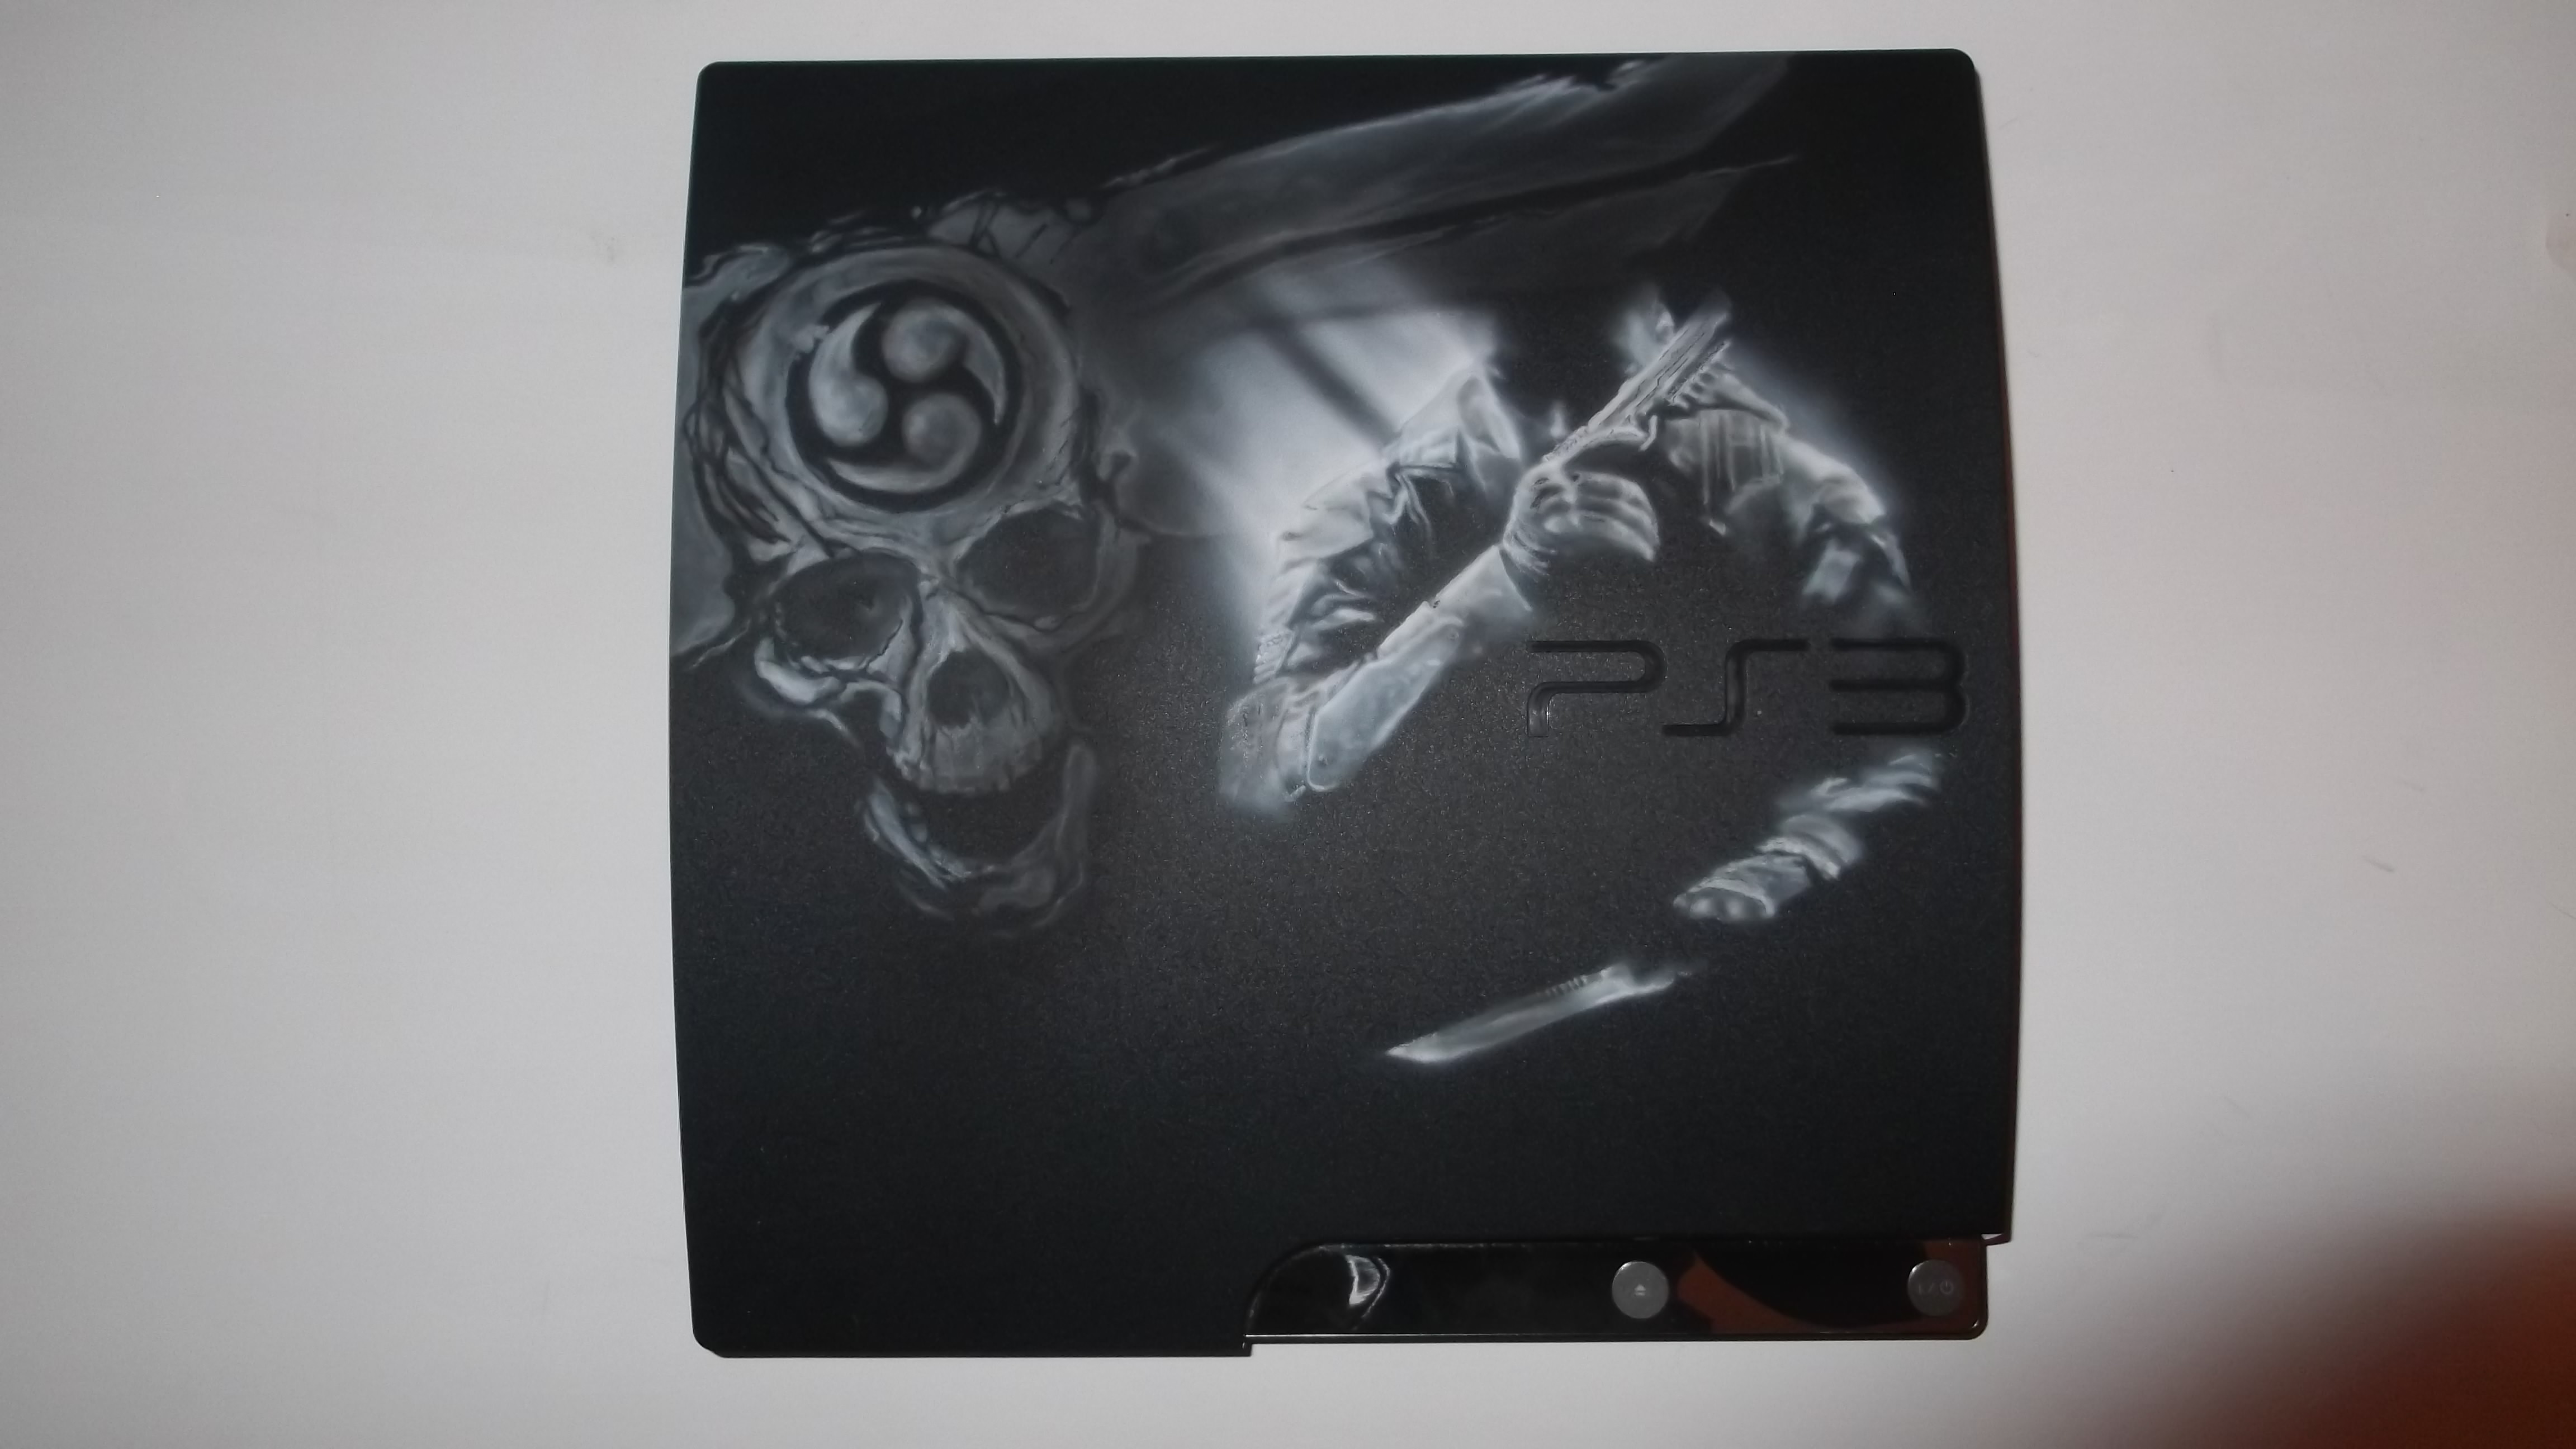 Hi There Made a custompaint on a Ps3:a the theme is Call of duty Black ops 2, i`m not so sure about the design/layout it didnt turn out the way i`d hoped with the logo, wanted it to be more transparent and just a glimt of it... perhaps a layer of coat brings more darkness and shade from the paint? However i think i overworked this piece and should bee settled with just the guy... http://www.youtube.com/watch?v=dpoZlYwKGOs